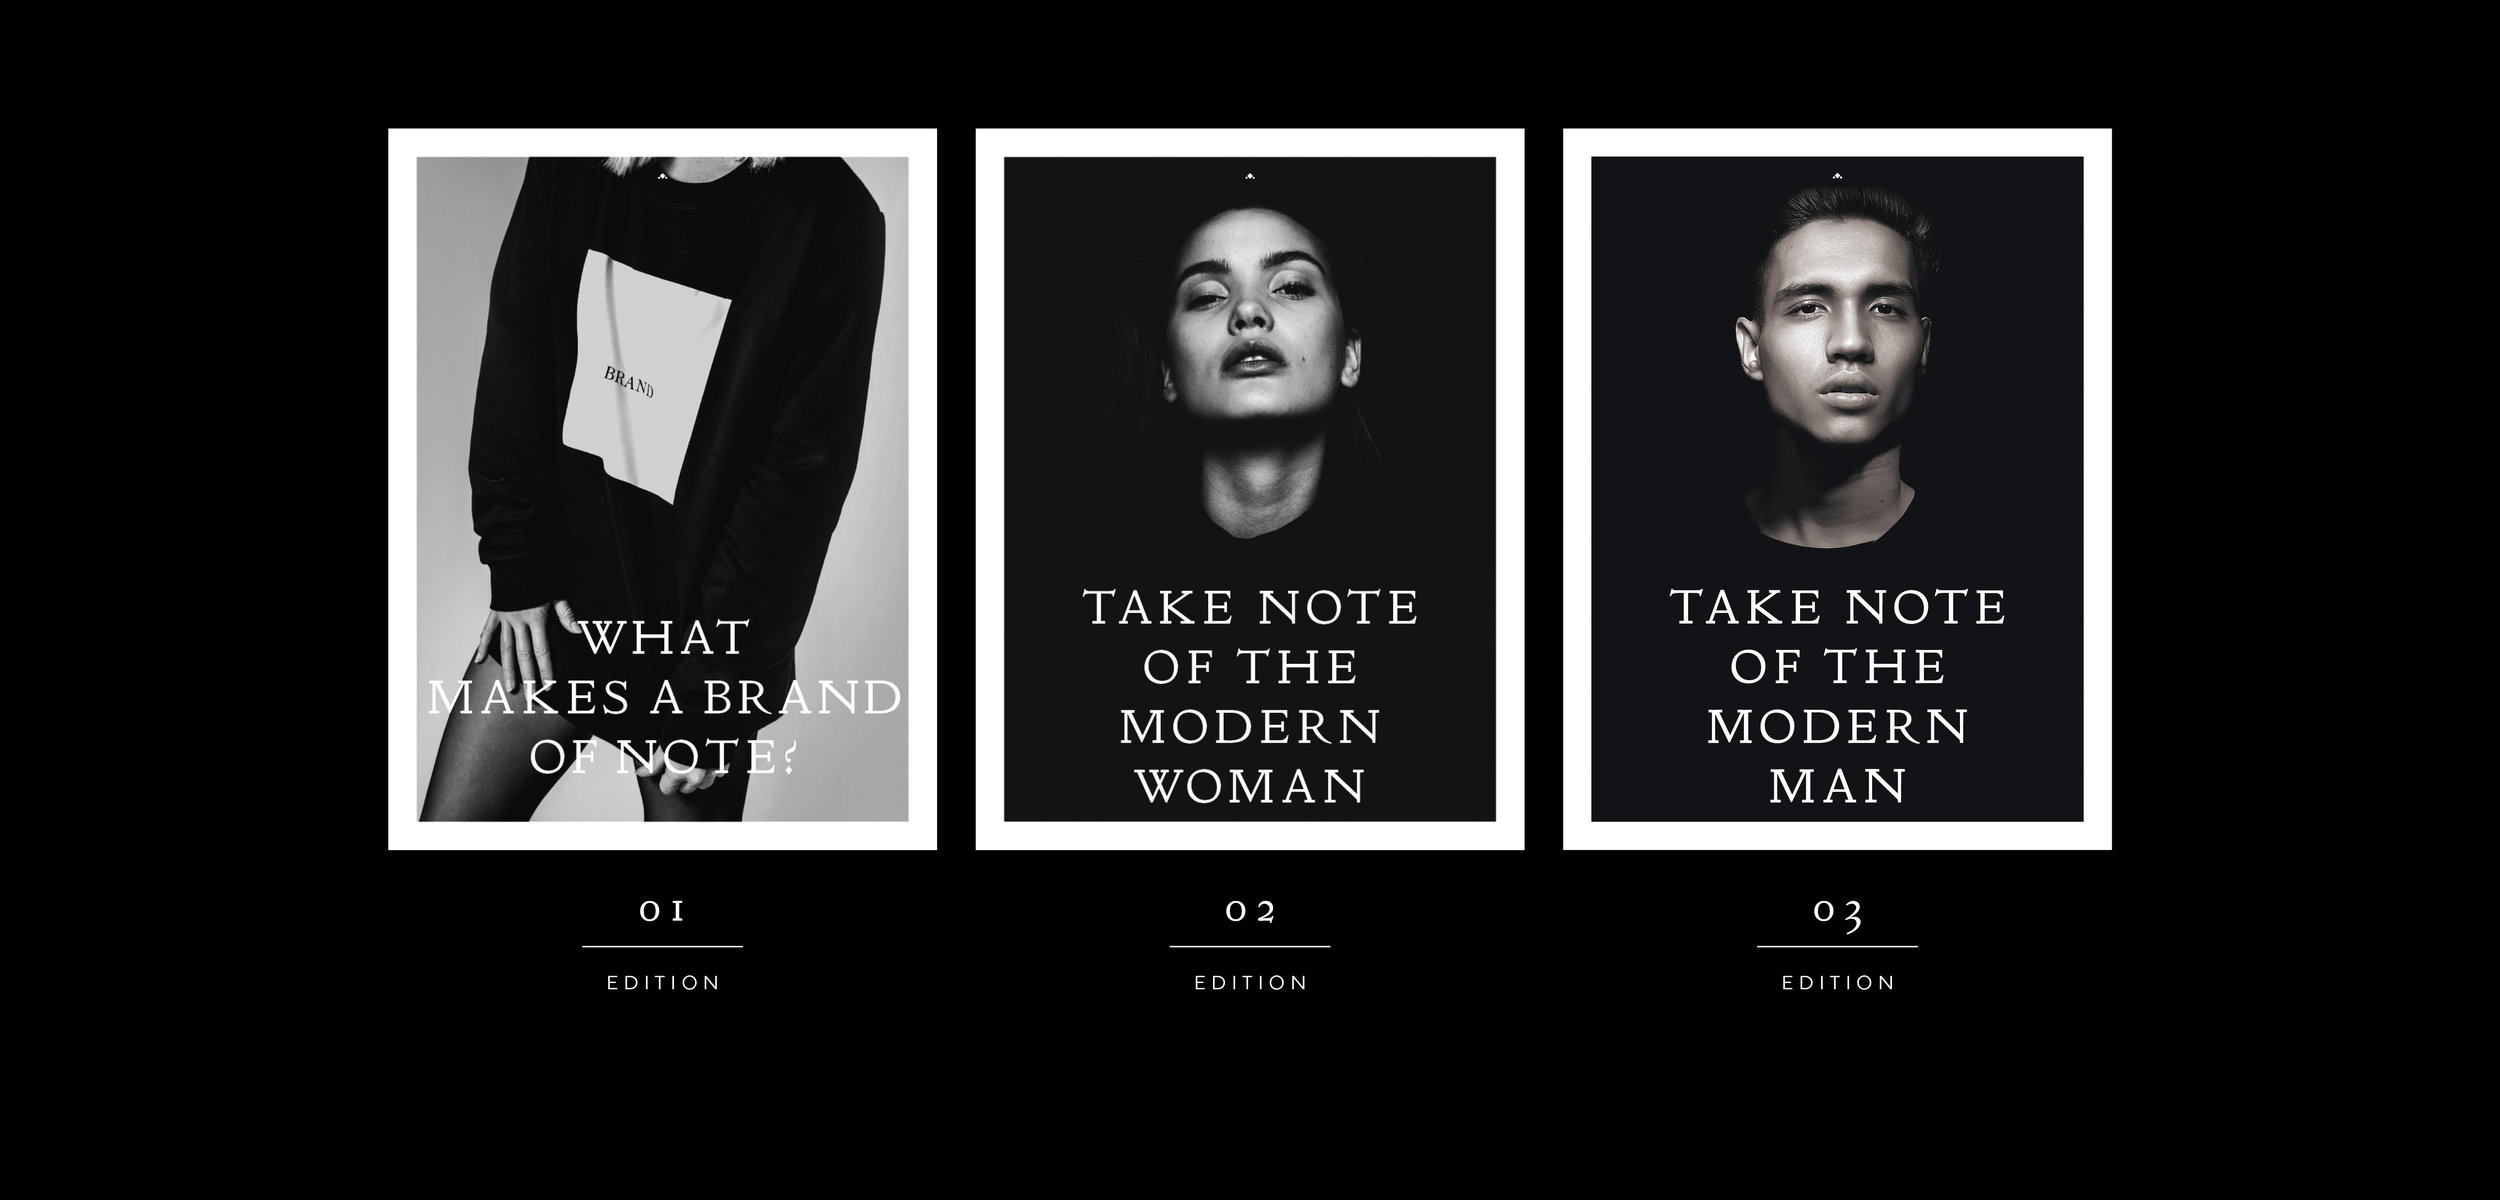 Noted editions 1-3.jpg